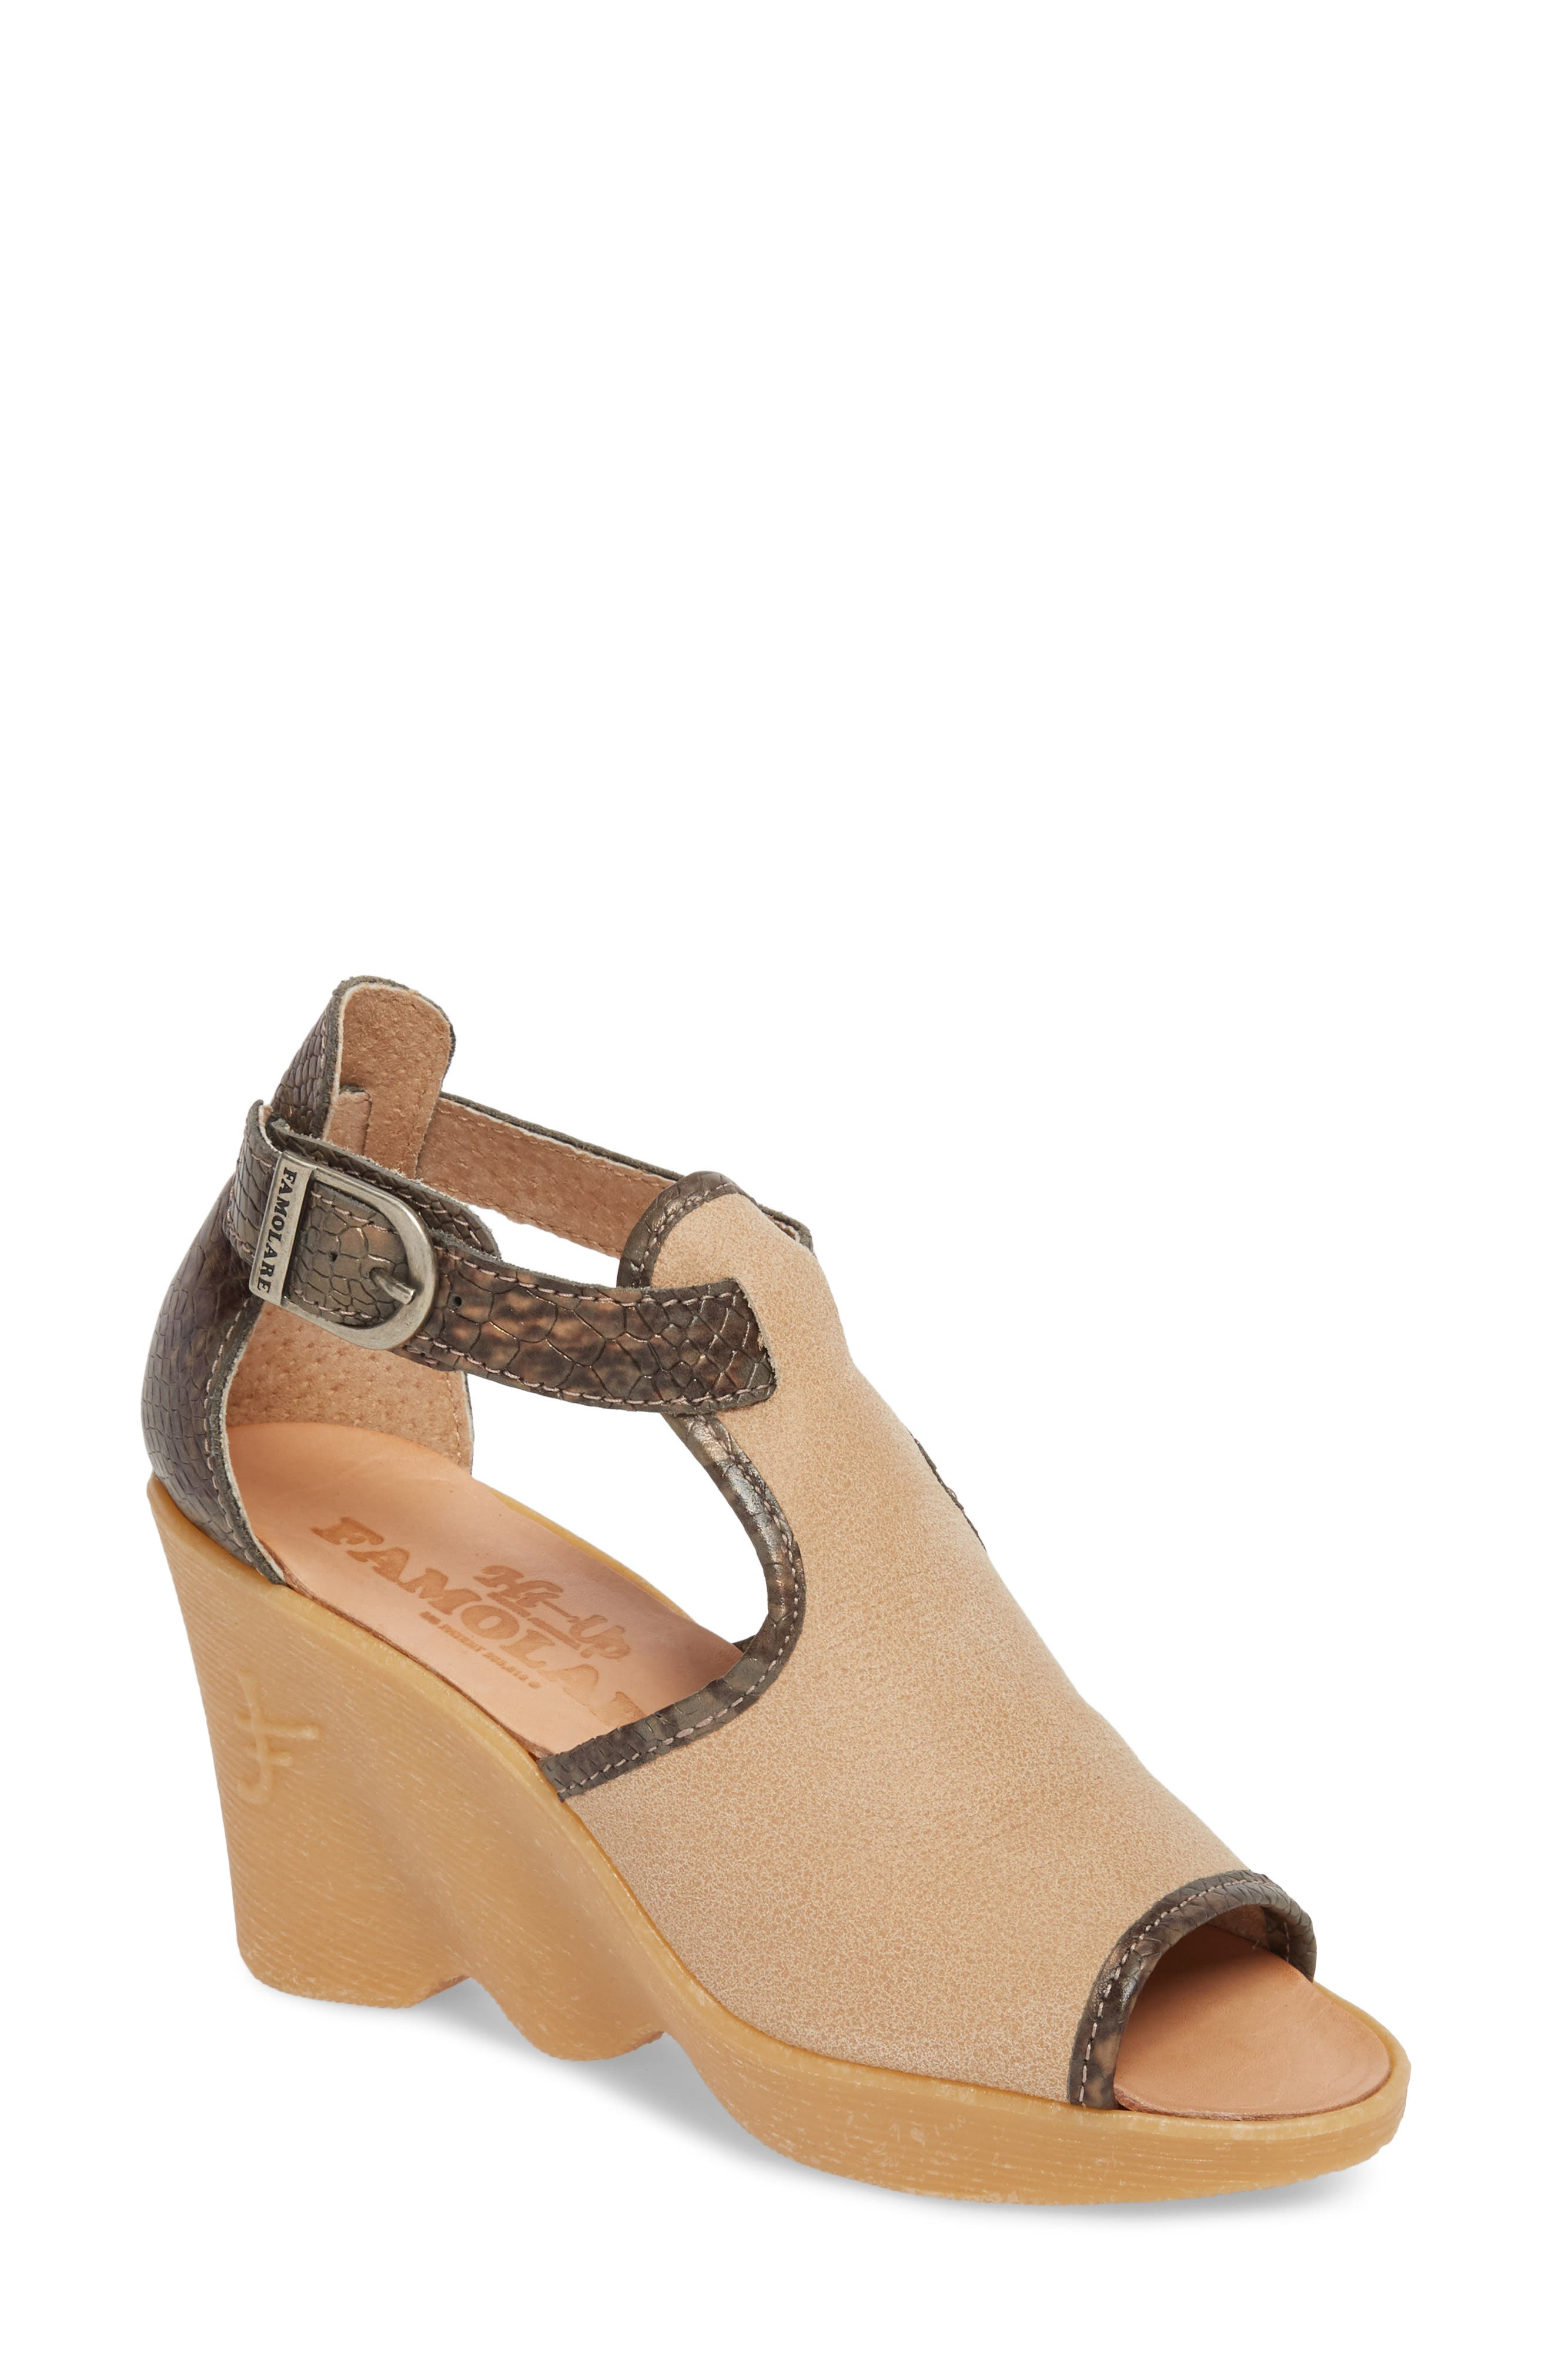 Queen Bee Wedge Sandal,                             Main thumbnail 1, color,                             NUDE MIX LEATHER